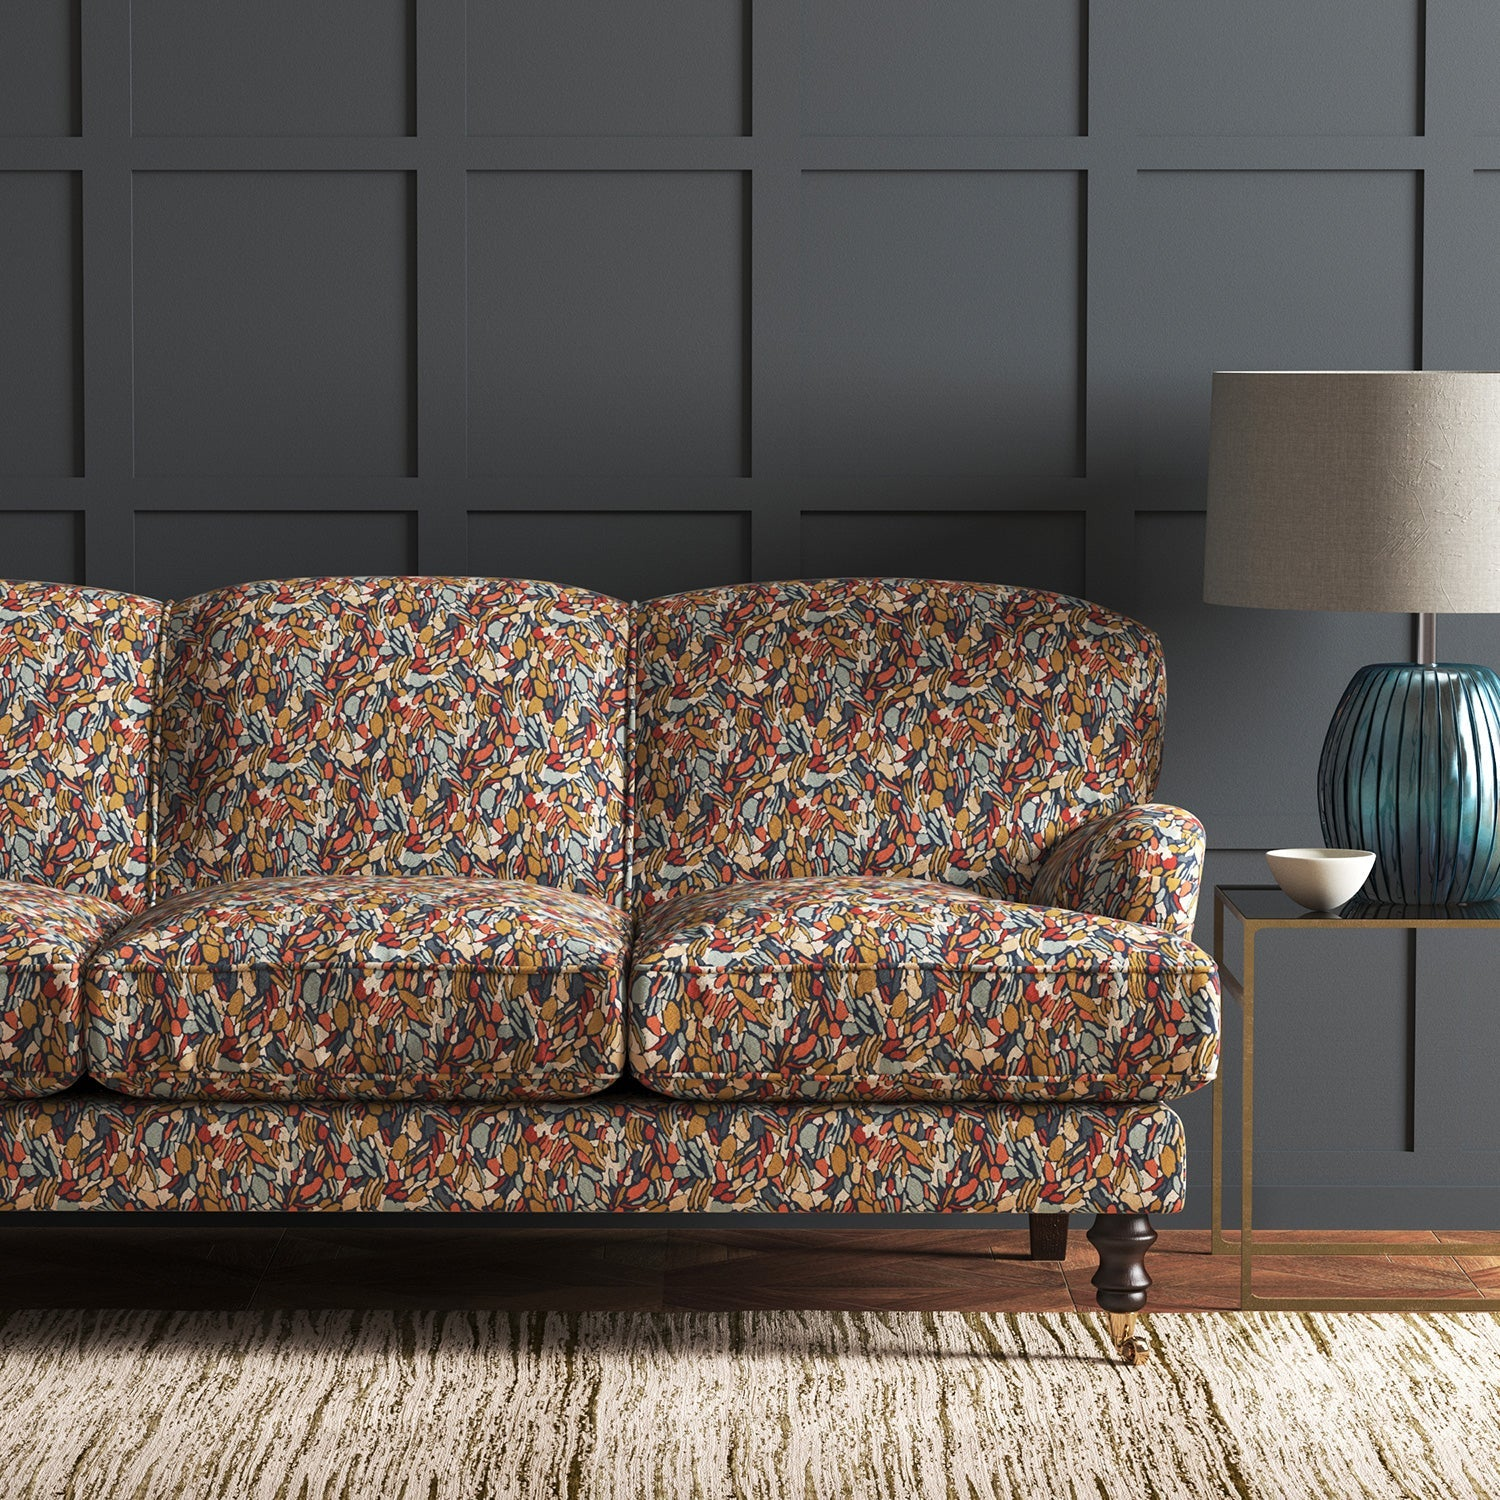 Sofa in a stain resistant velvet fabric with a multicoloured abstract design